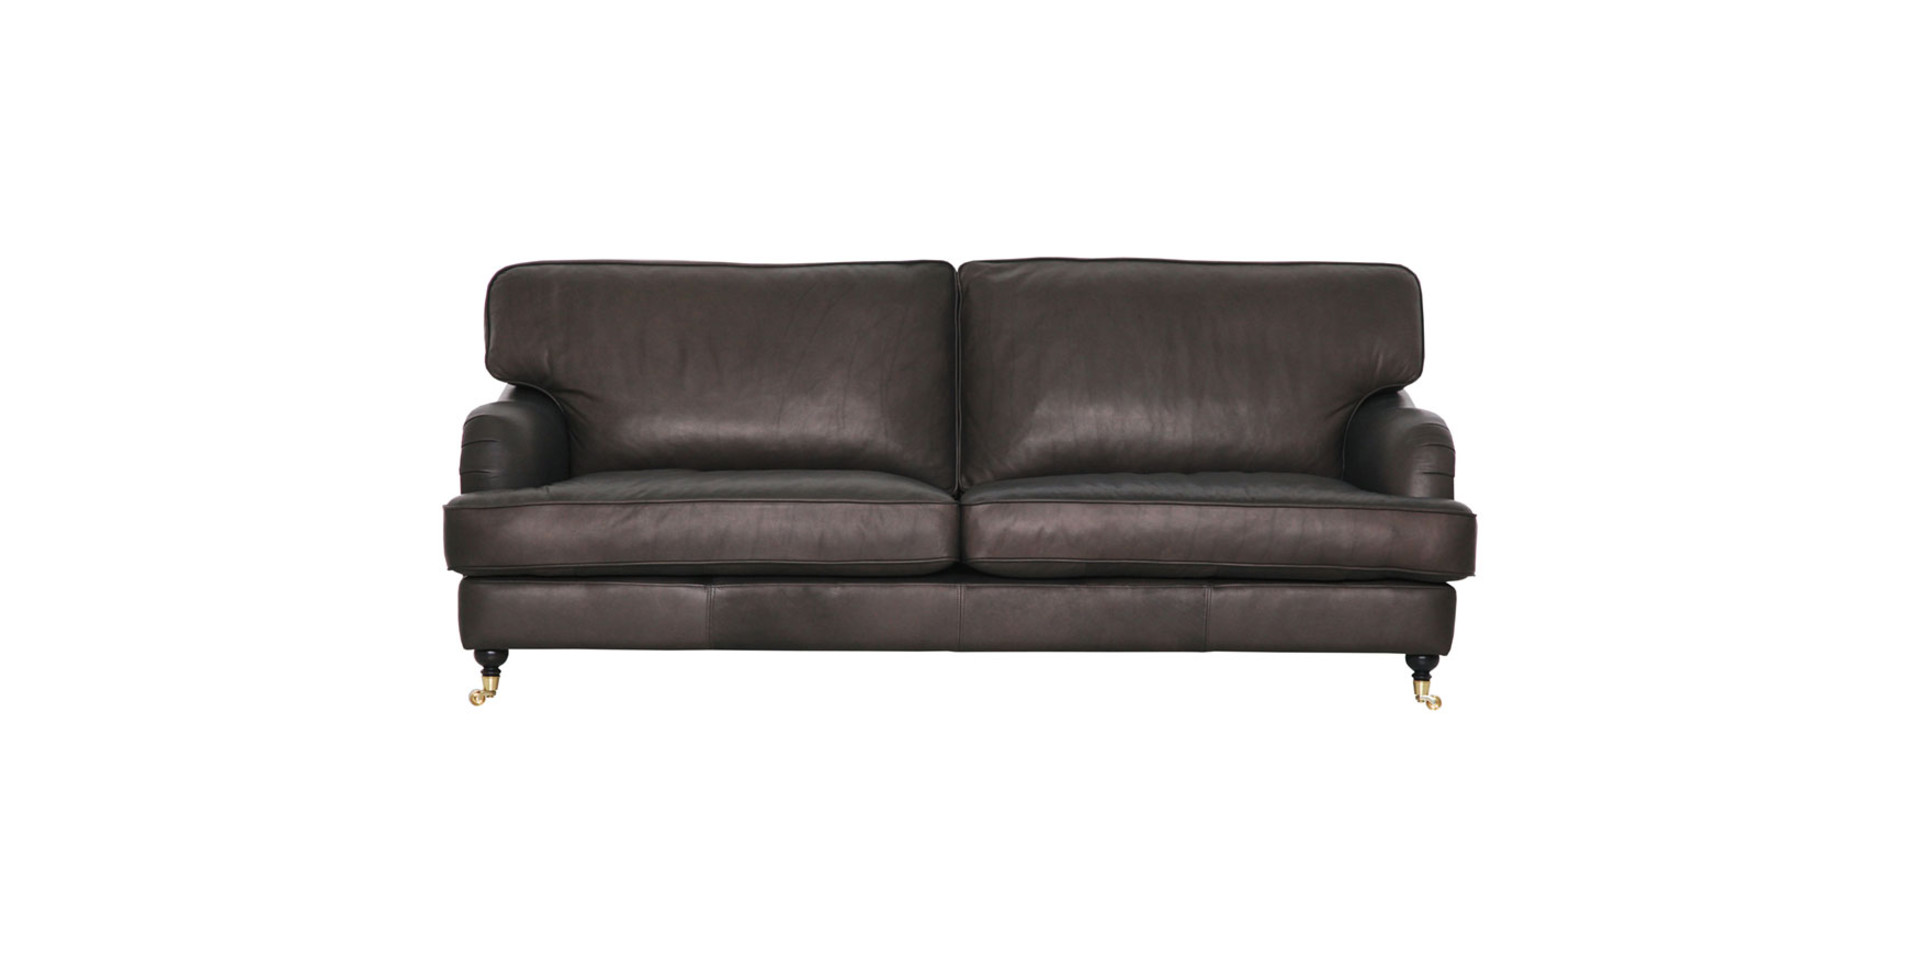 sits-howard-canape-3seater_aniline_dark_brown_1